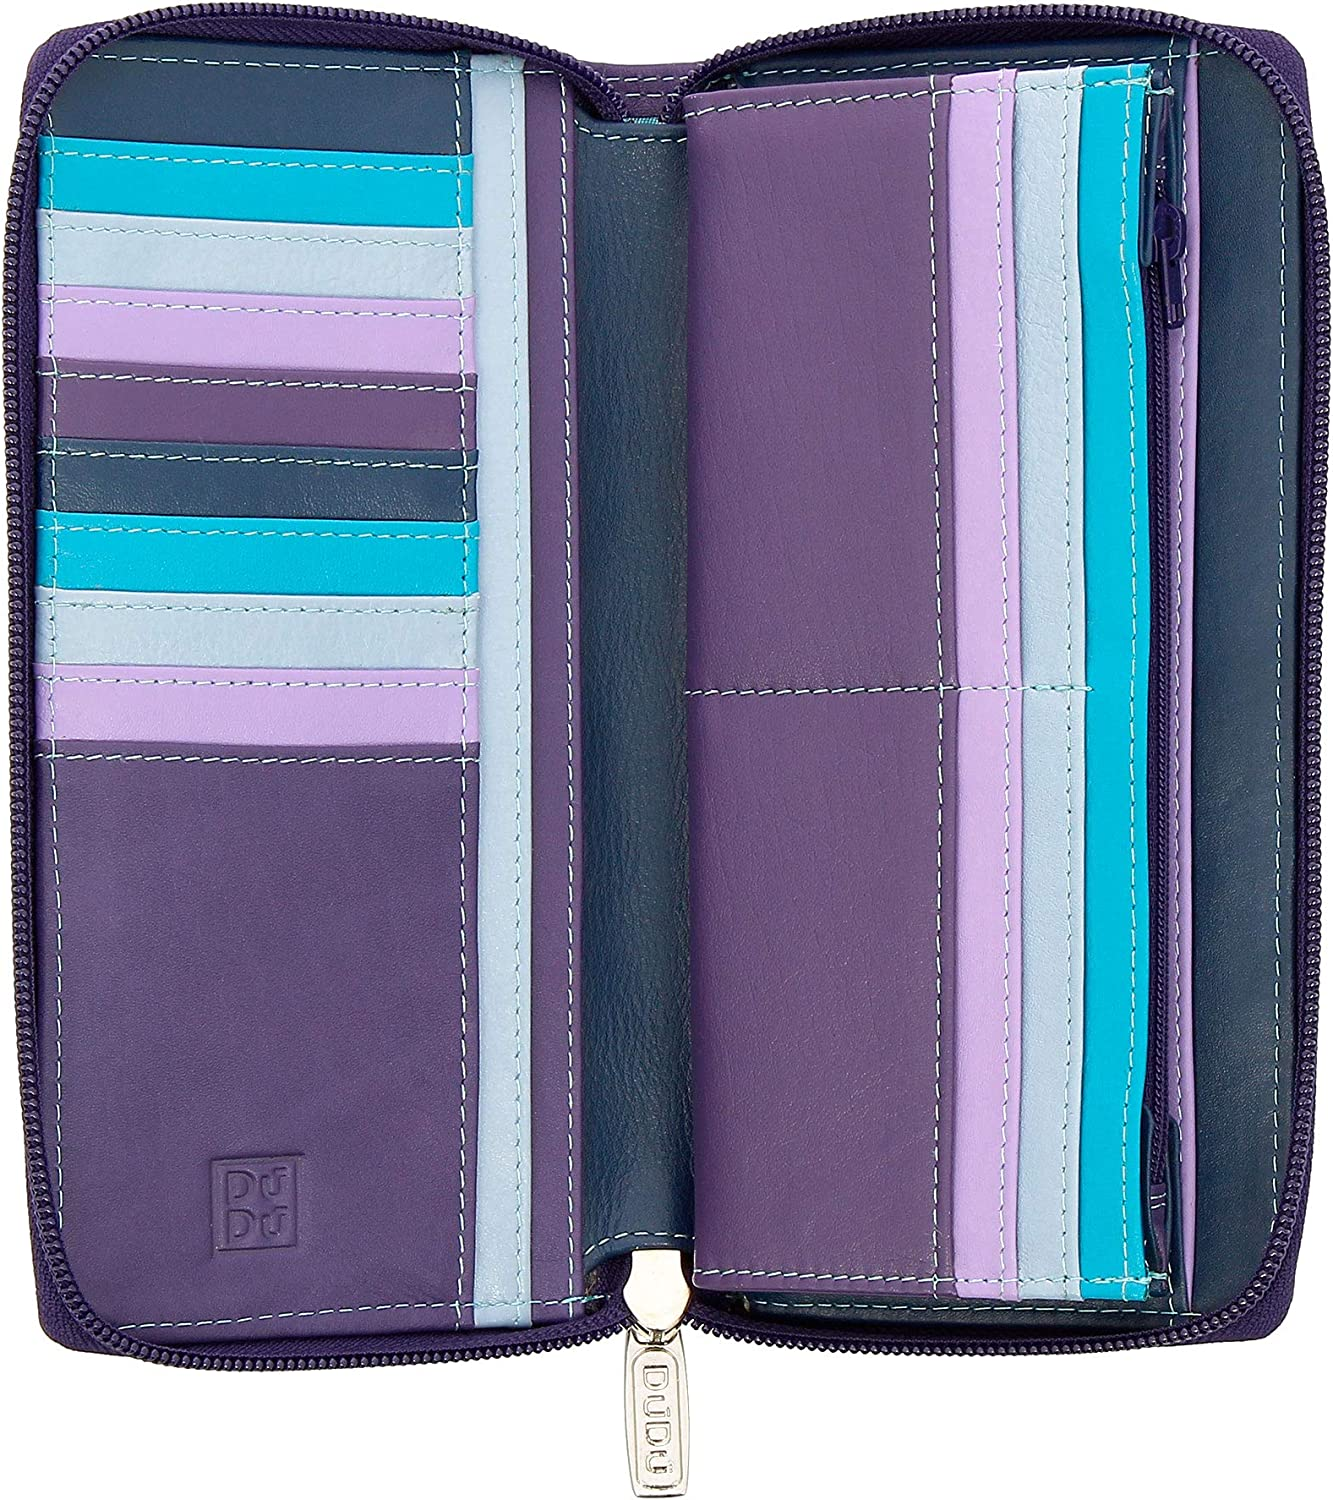 DUDU Long Zipper Wallet for Women in Leather Large Ladies Purse Zip Around with 15 Card Slots Mauve